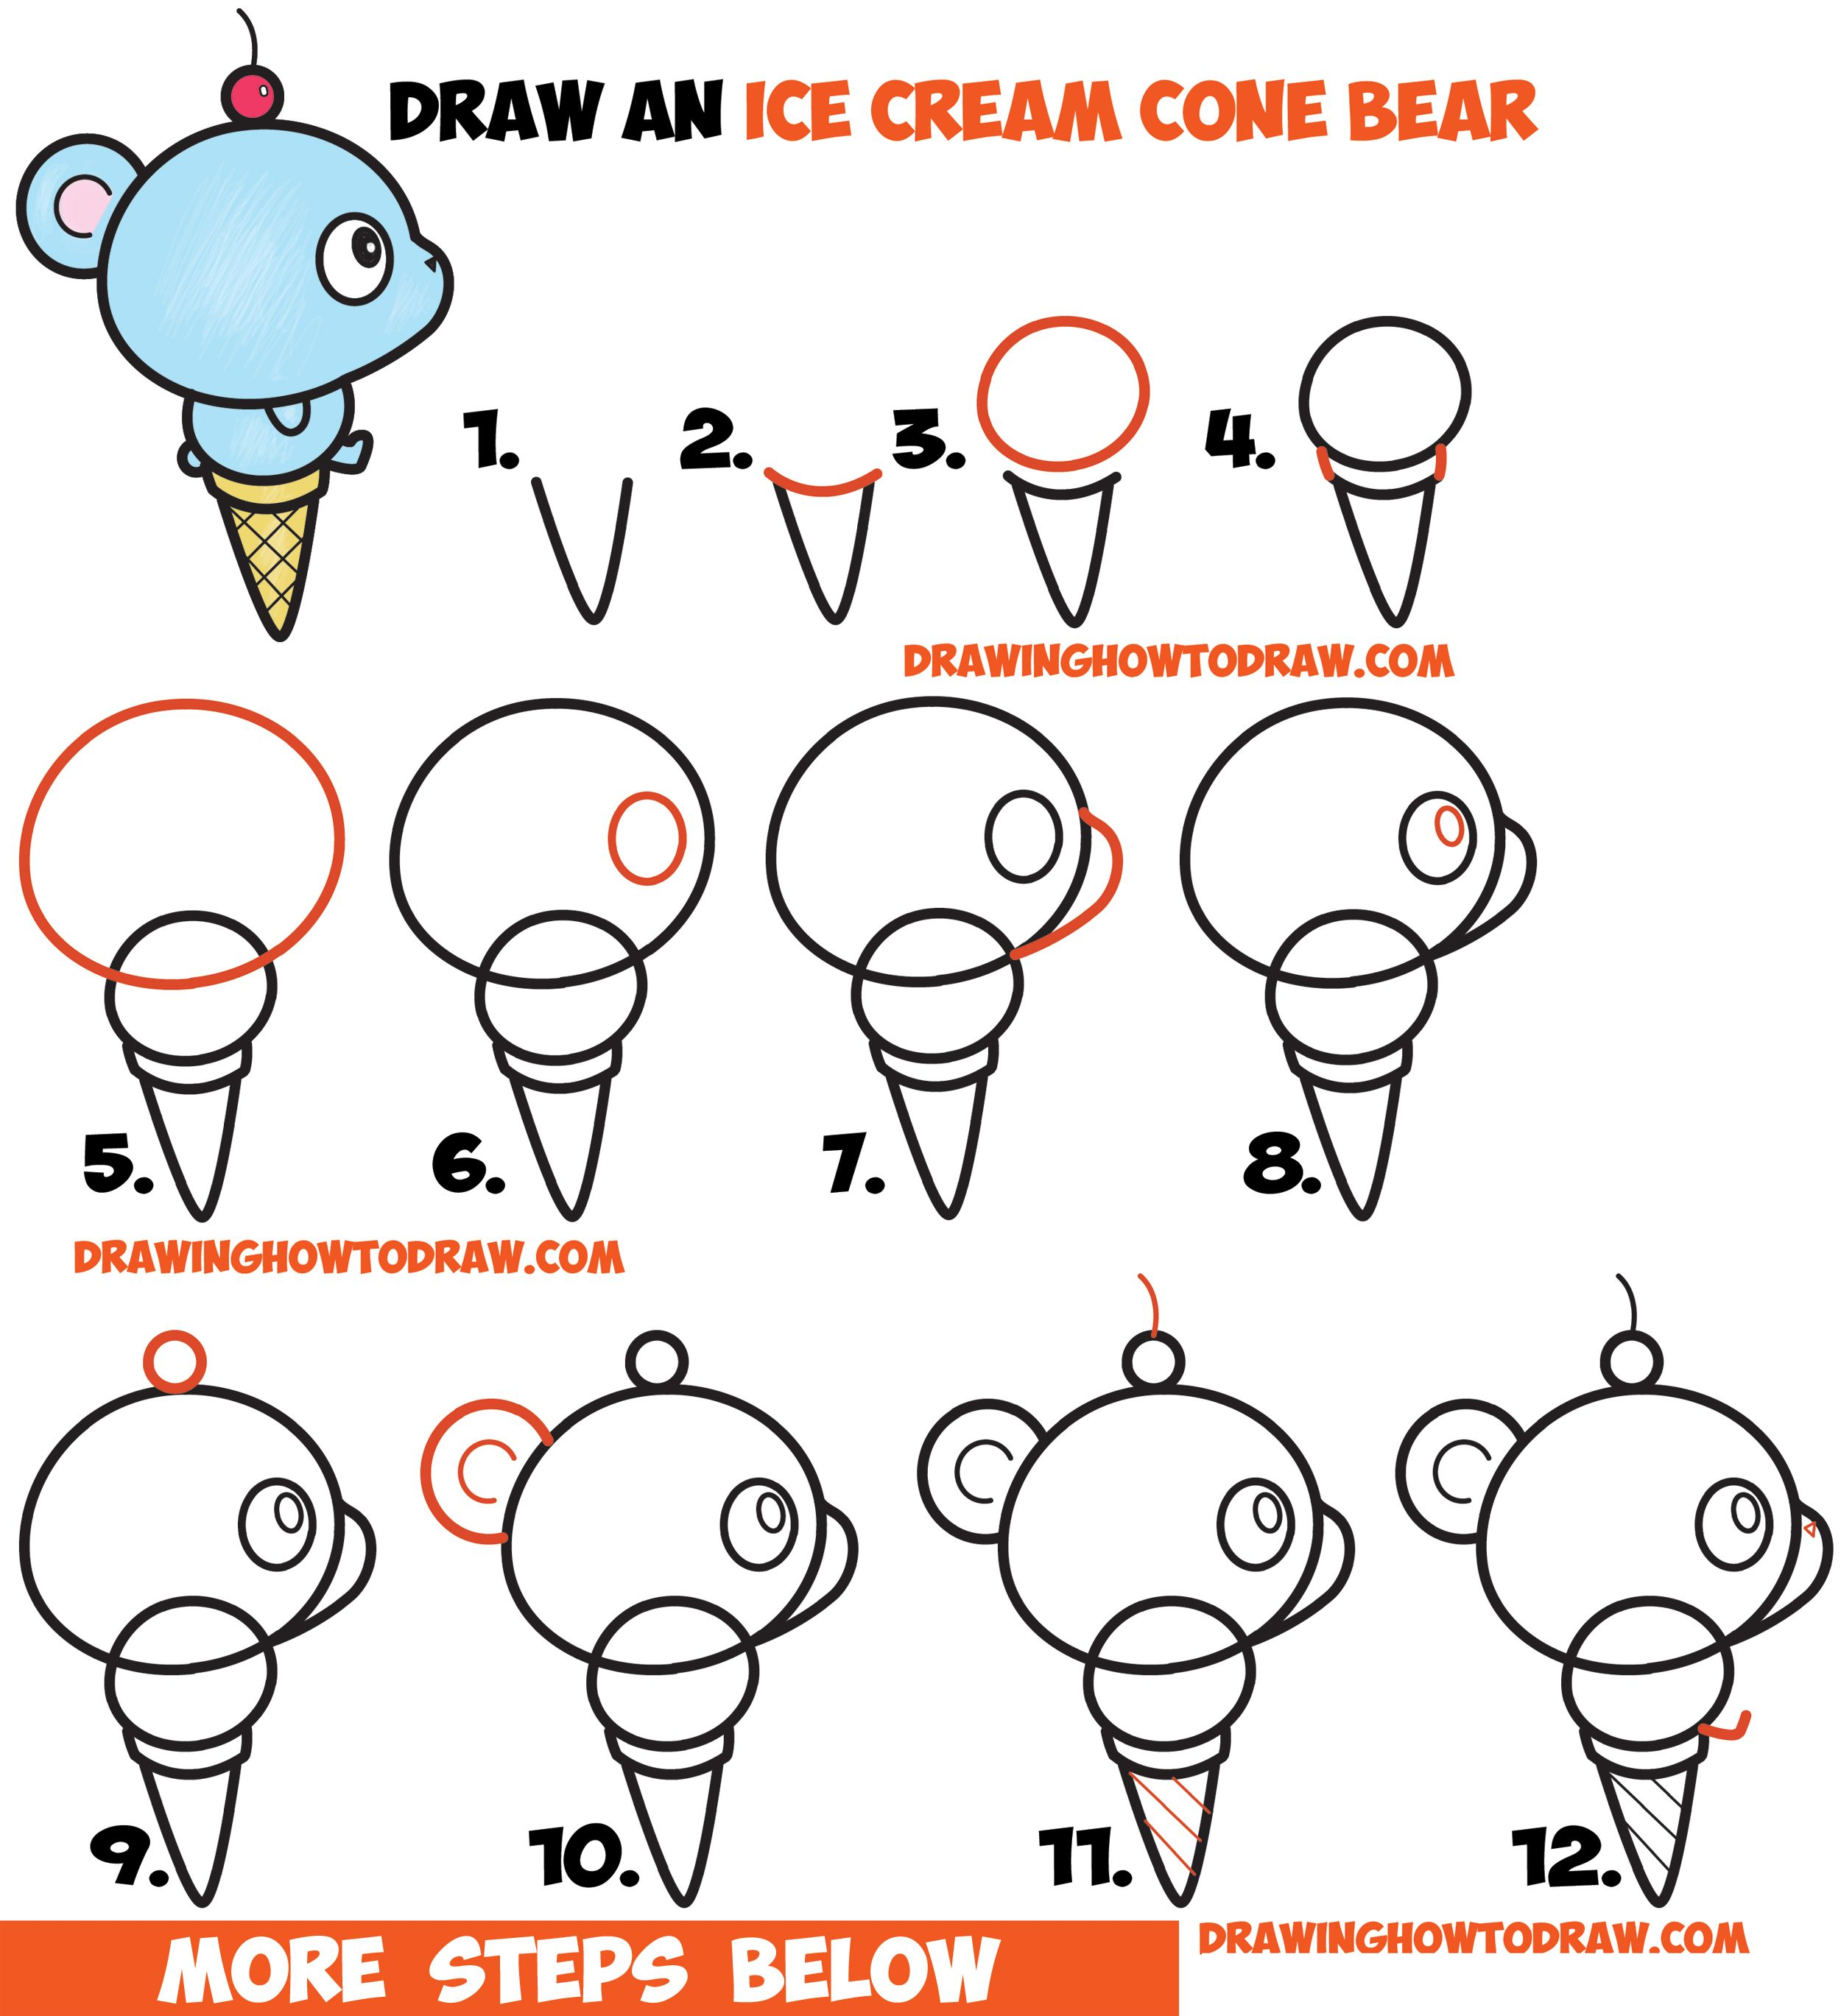 How To Draw Super Cute Cartoon Kawaii Bear On Ice Cream Cone Easy Step By Drawing Tutorial For Kids Beginners